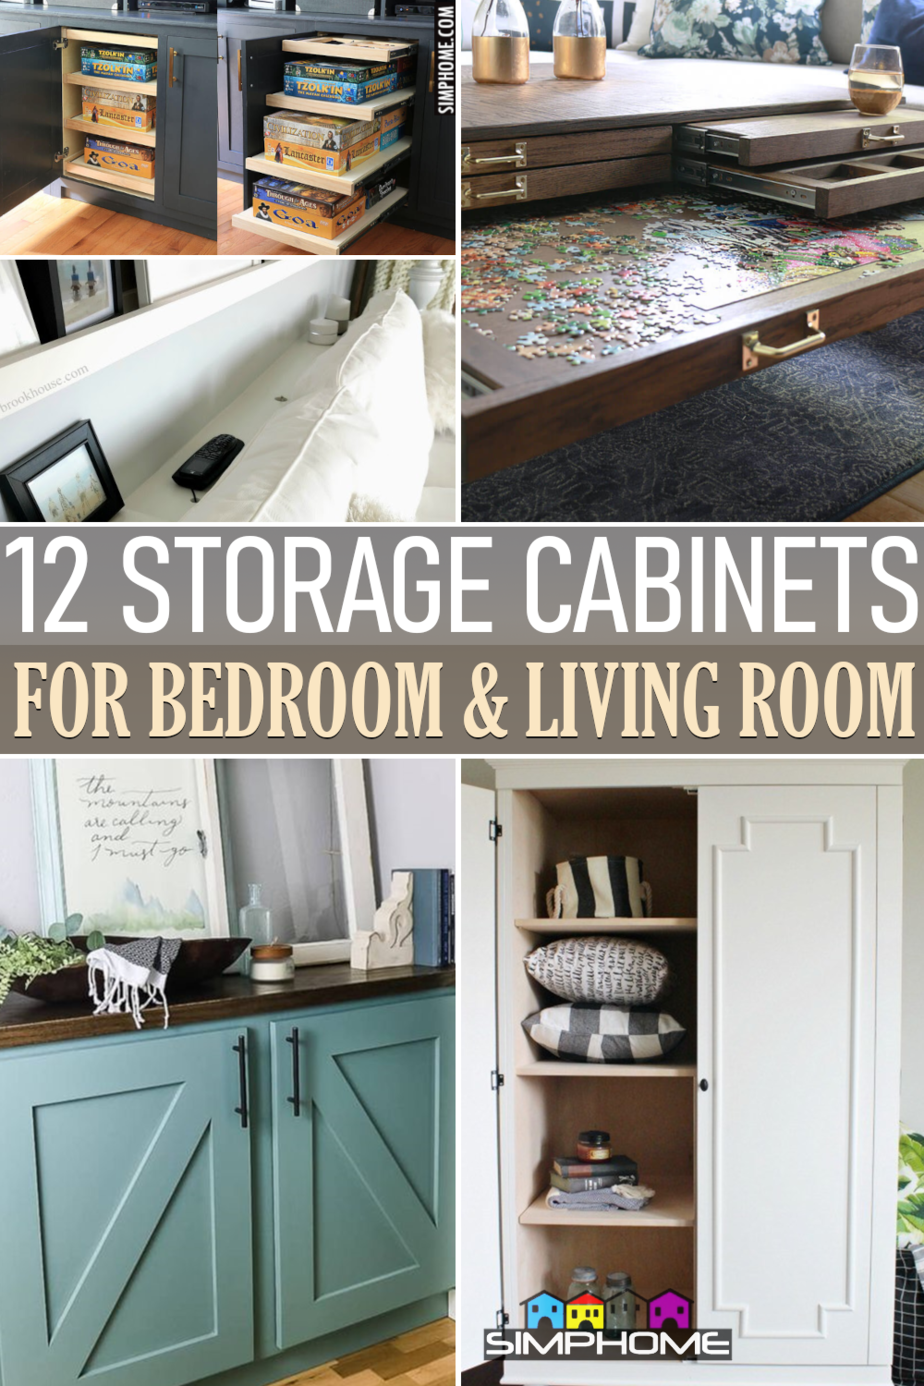 12 storage cabinet DIY for small bedroom and living room via Simphome.comFeatured